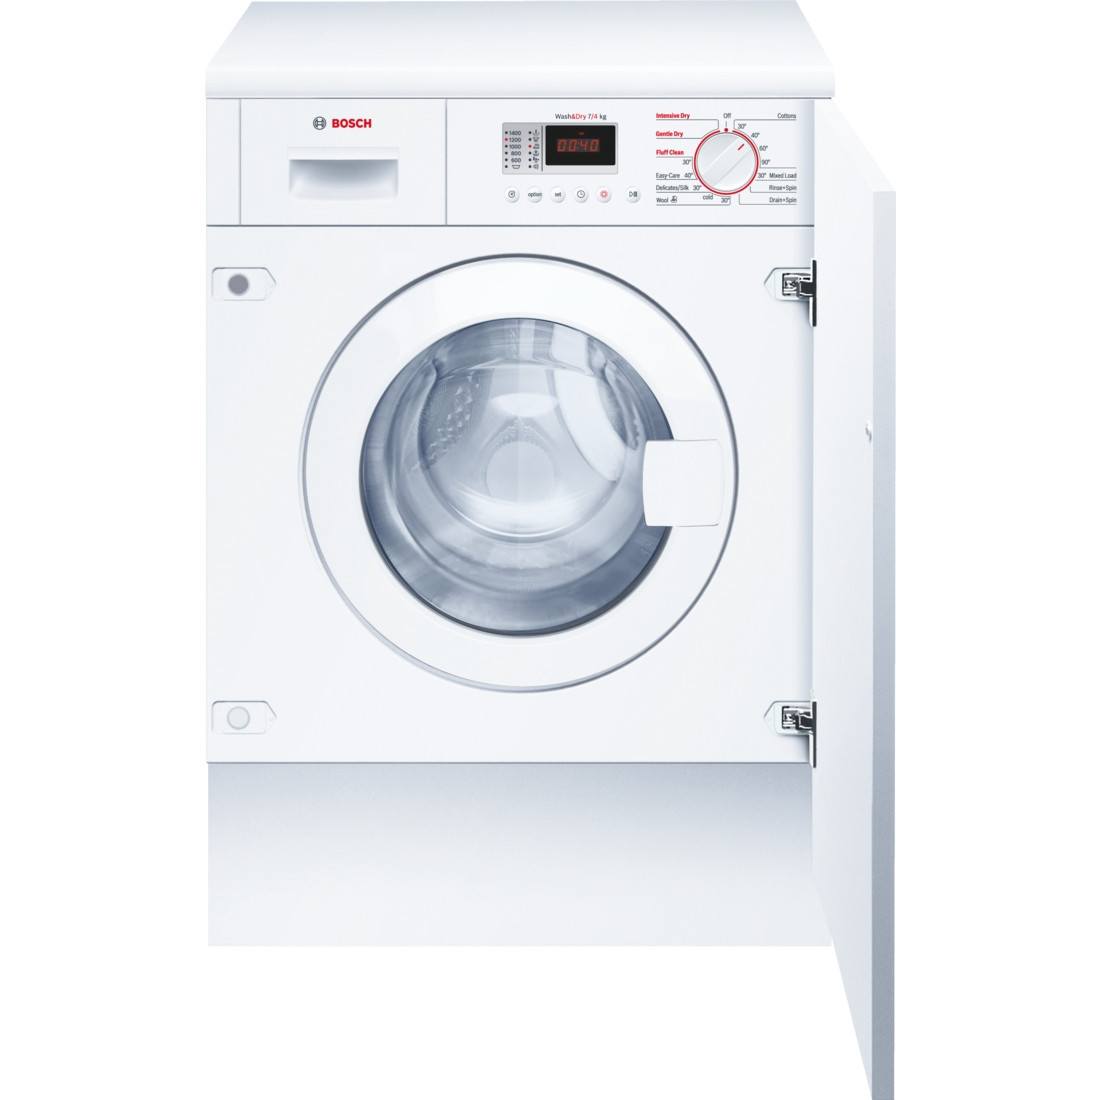 Bosch Serie 4 WKD28351GB Fully Integrated 7kg B-Rated 1400rpm Washer Dryer